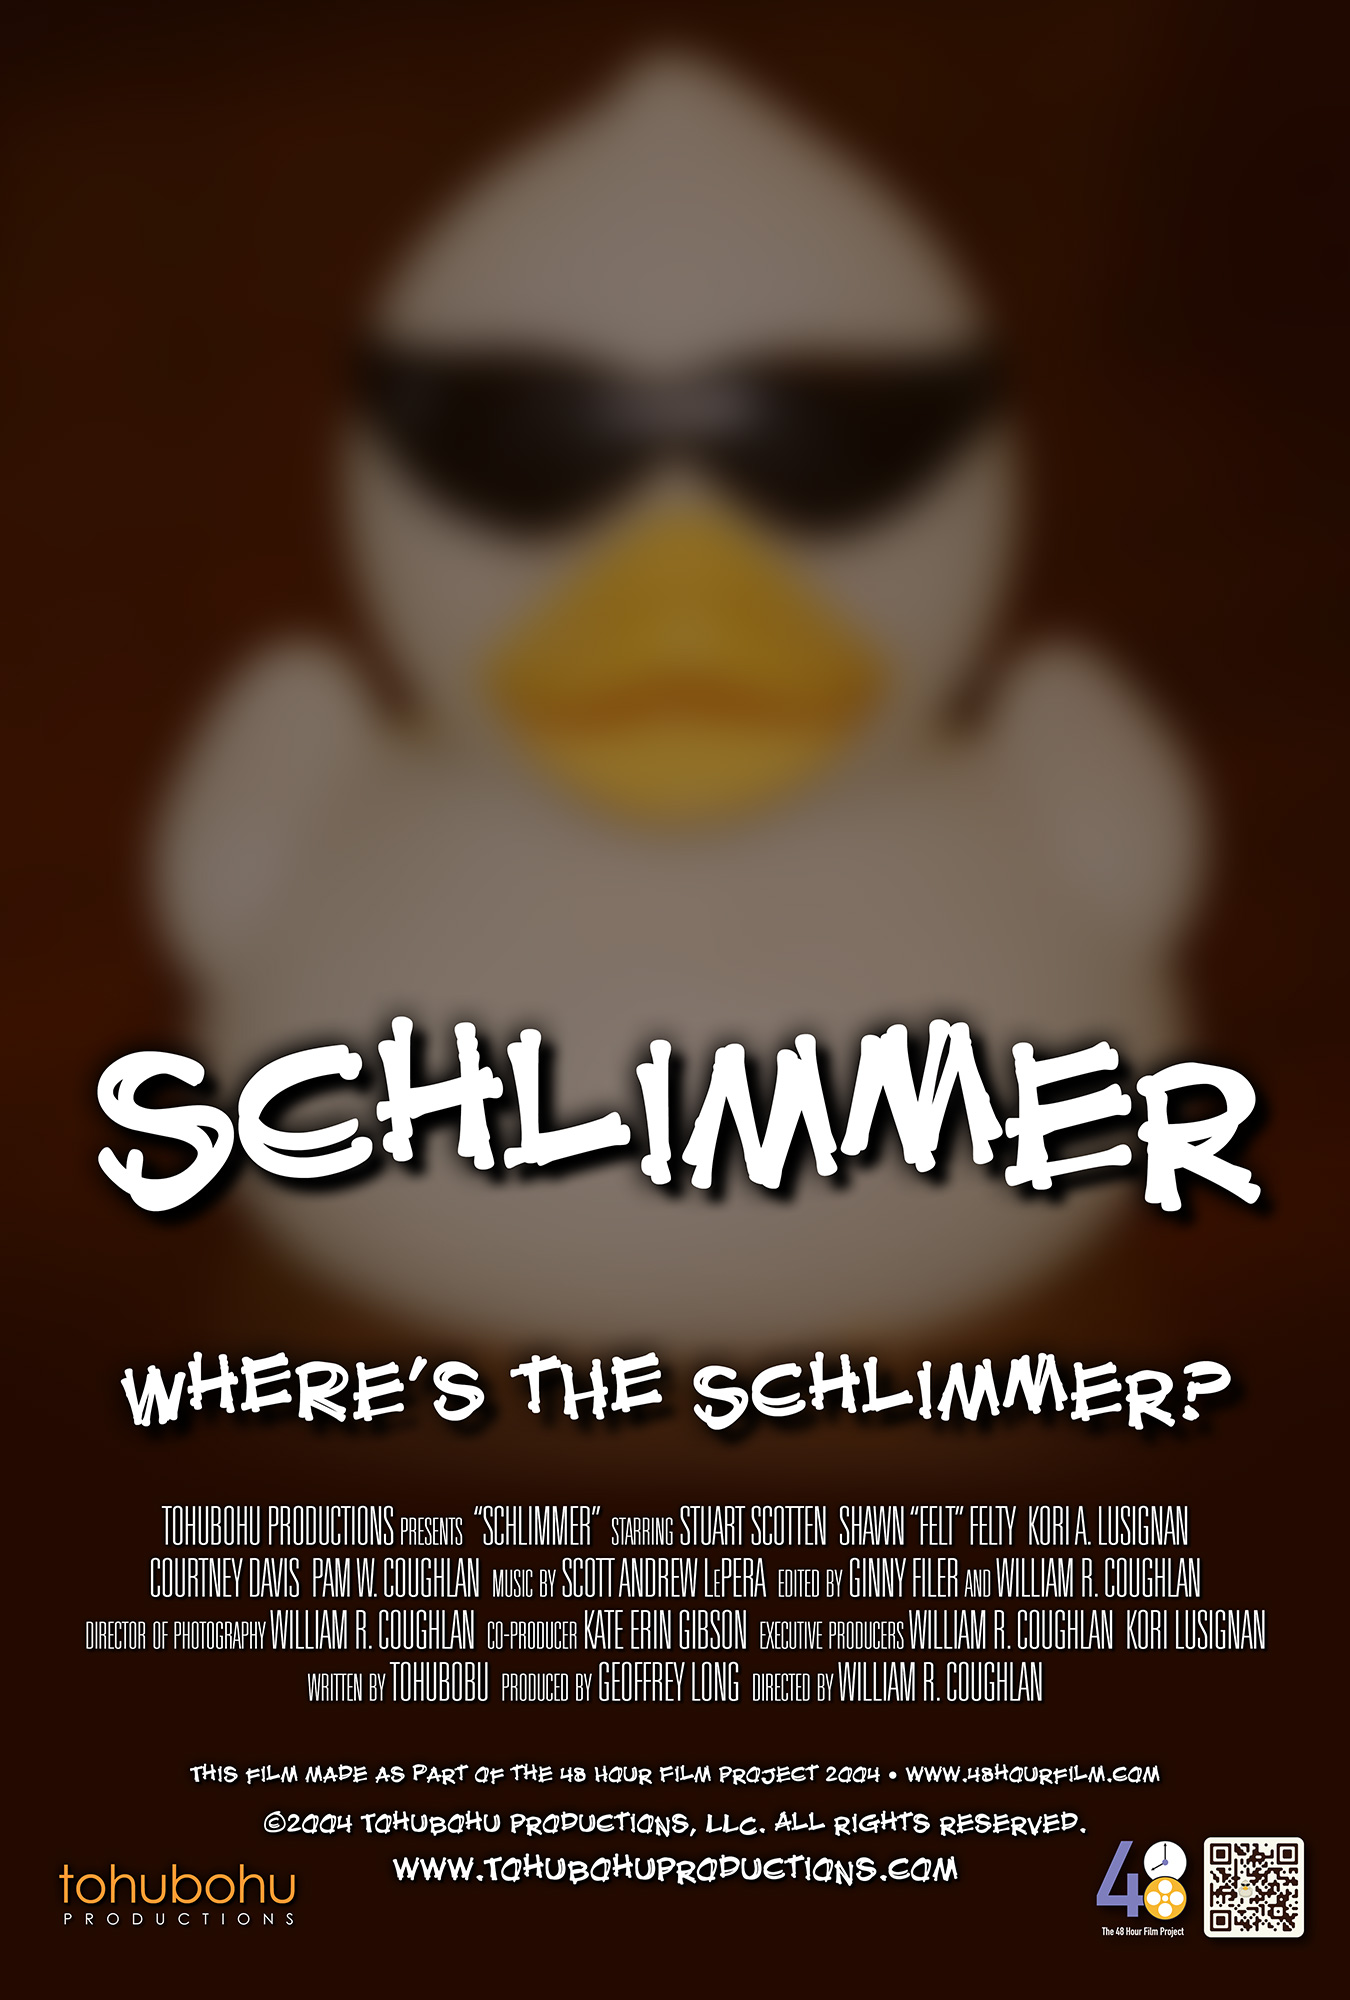 """Schlimmer - 2004 · 8:12 · written by Tohubohu · produced by Geoffrey long · directed by William R. CoughlanSebastian is eager to show off his latest acquisition to a cadre of eccentric — and soon-to-be-jealous — art collectors, even hiring his photographer nephew to capture the unveiling for posterity. But when the """"Schlimmer"""" turns up missing, accusations of theft begin flying, and long-simmering resentments begin to undermine the group's cohesion.""""Schlimmer"""" — a mystery — was made as part of the 48 Hour Film Project 2004. The entire piece was created over the weekend of May 7–9, 2004, and first screened at the AFI Silver Theatre on Friday, May 14."""